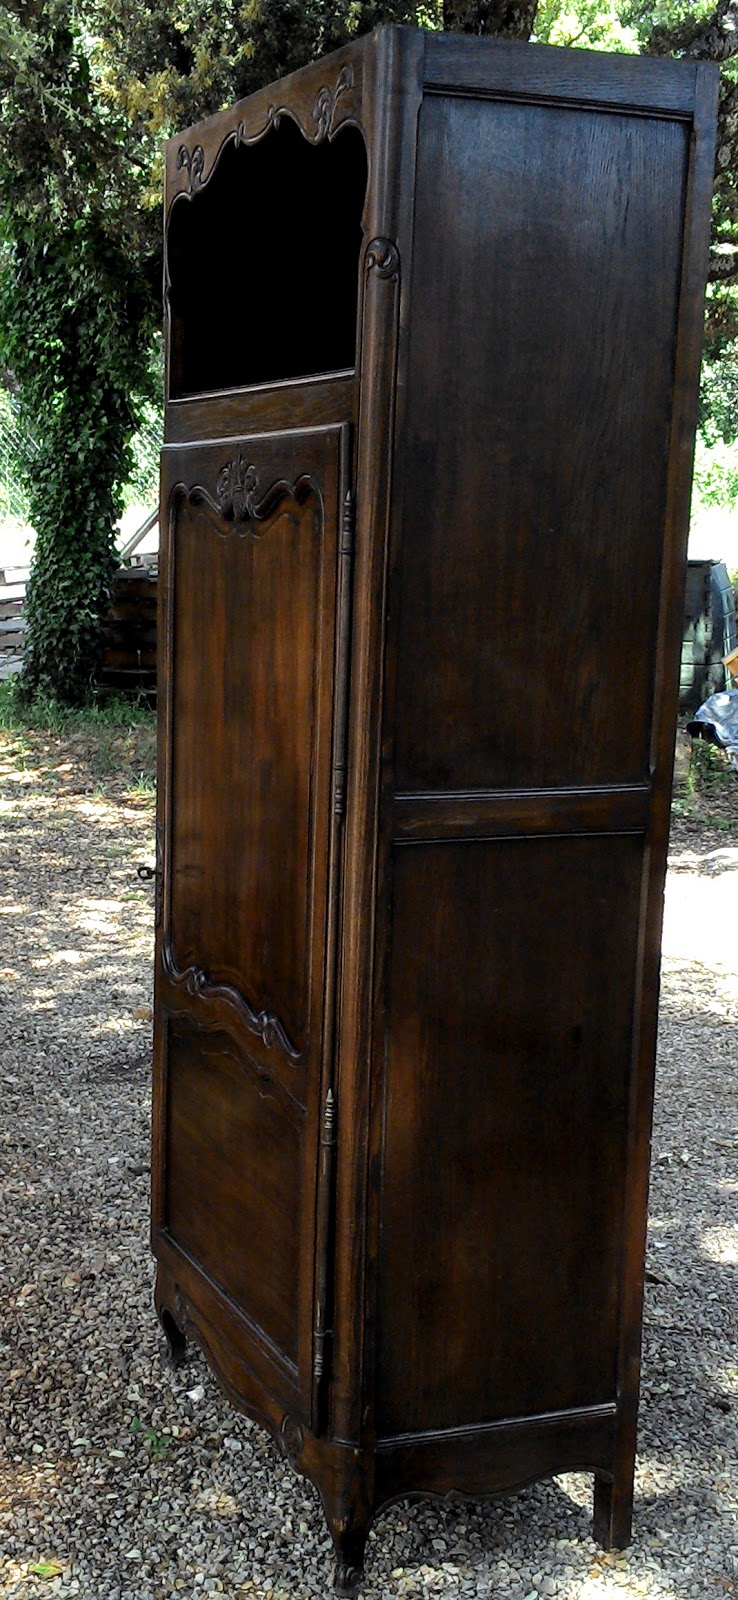 ancien meuble armoire bonneti re pieds coquille a niche homme debout. Black Bedroom Furniture Sets. Home Design Ideas